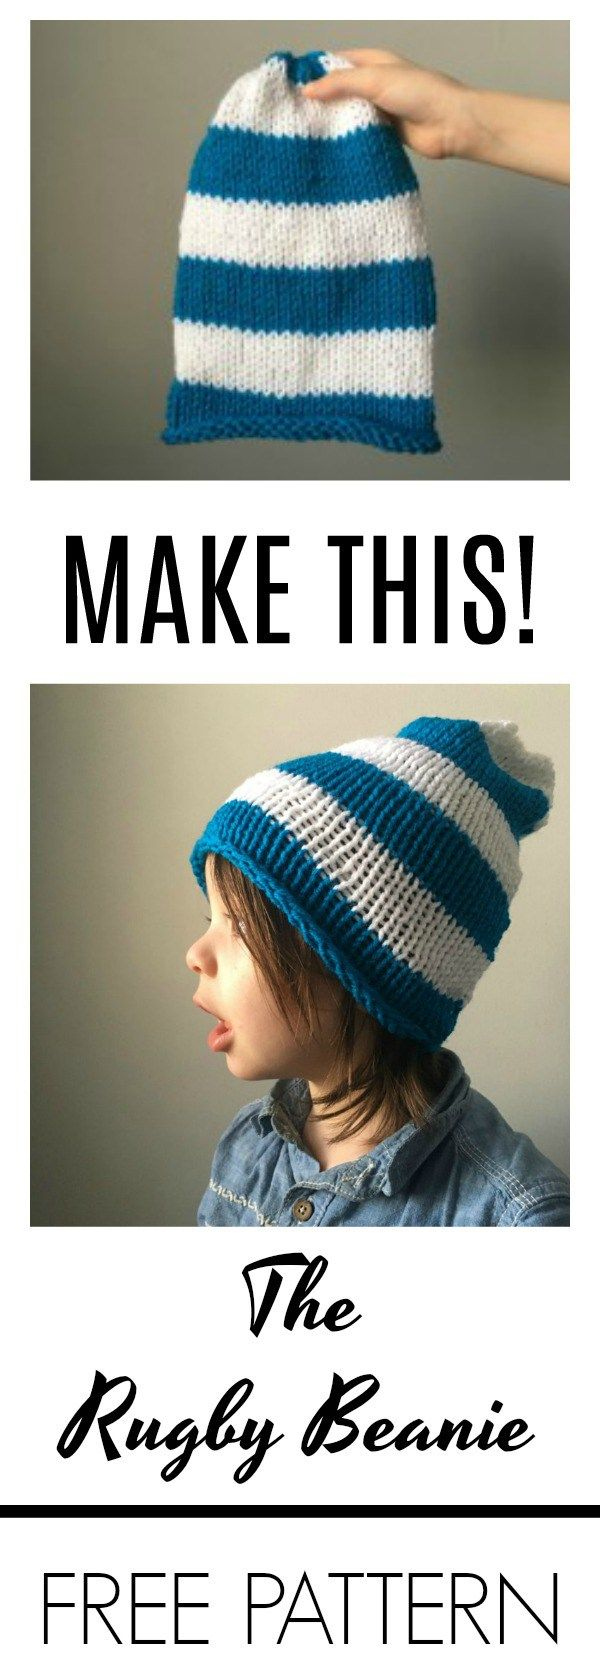 Looking for a fun, easy and quick knitting project? Check out this simple knit rugby beanie pattern! You'll love doing this over the weekend!